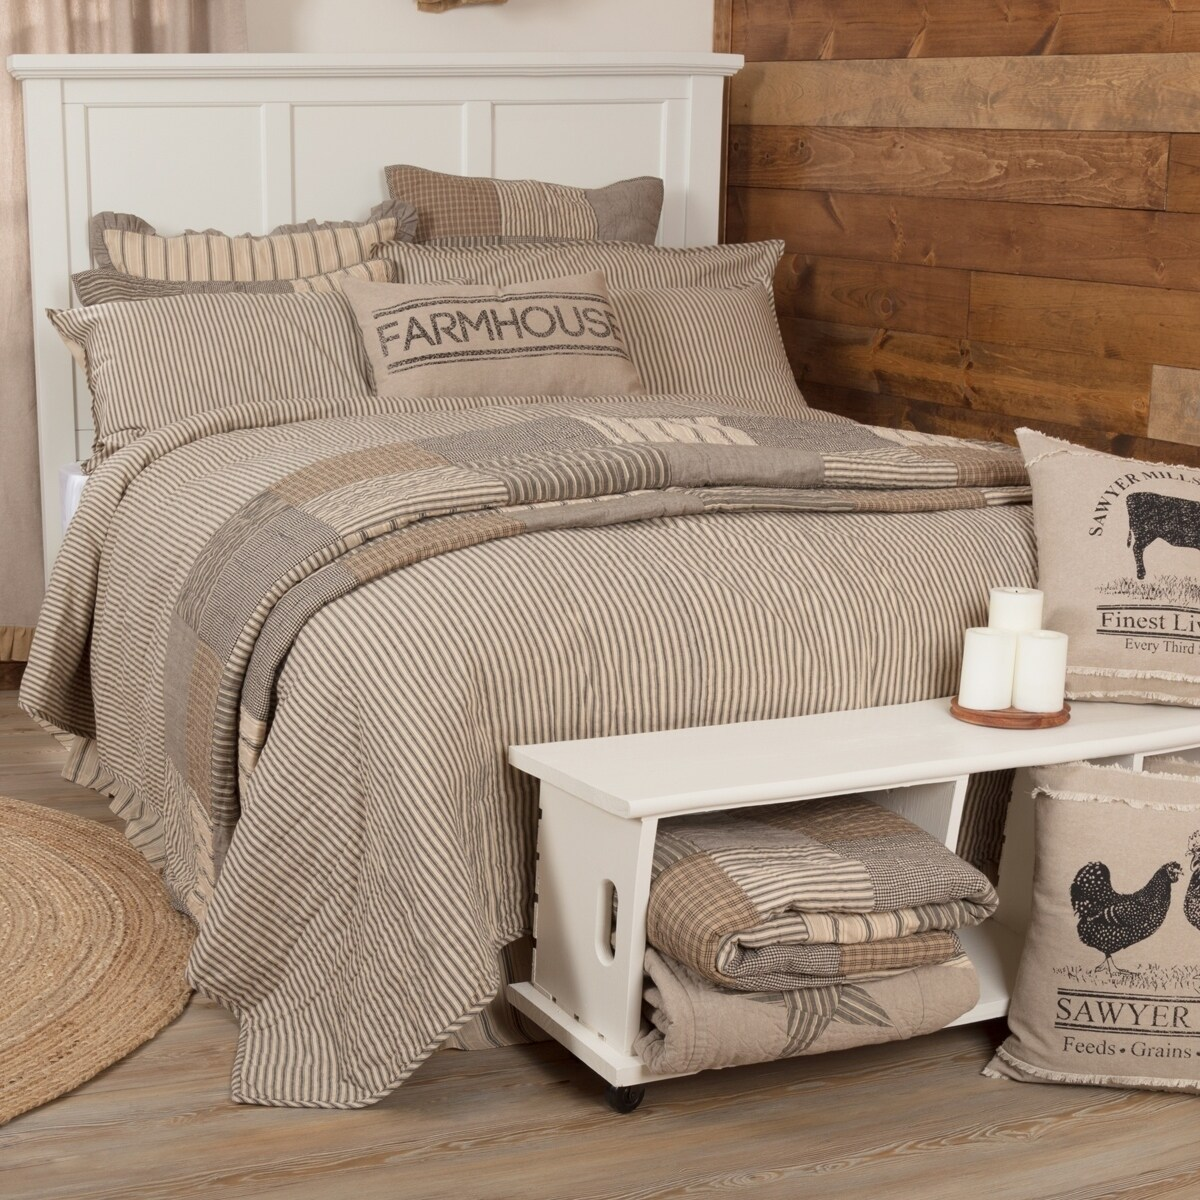 Red Country VHC Brands Sawyer Mill Farmhouse Bedding Ticking Cotton Pre-Washed Striped California King Coverlet